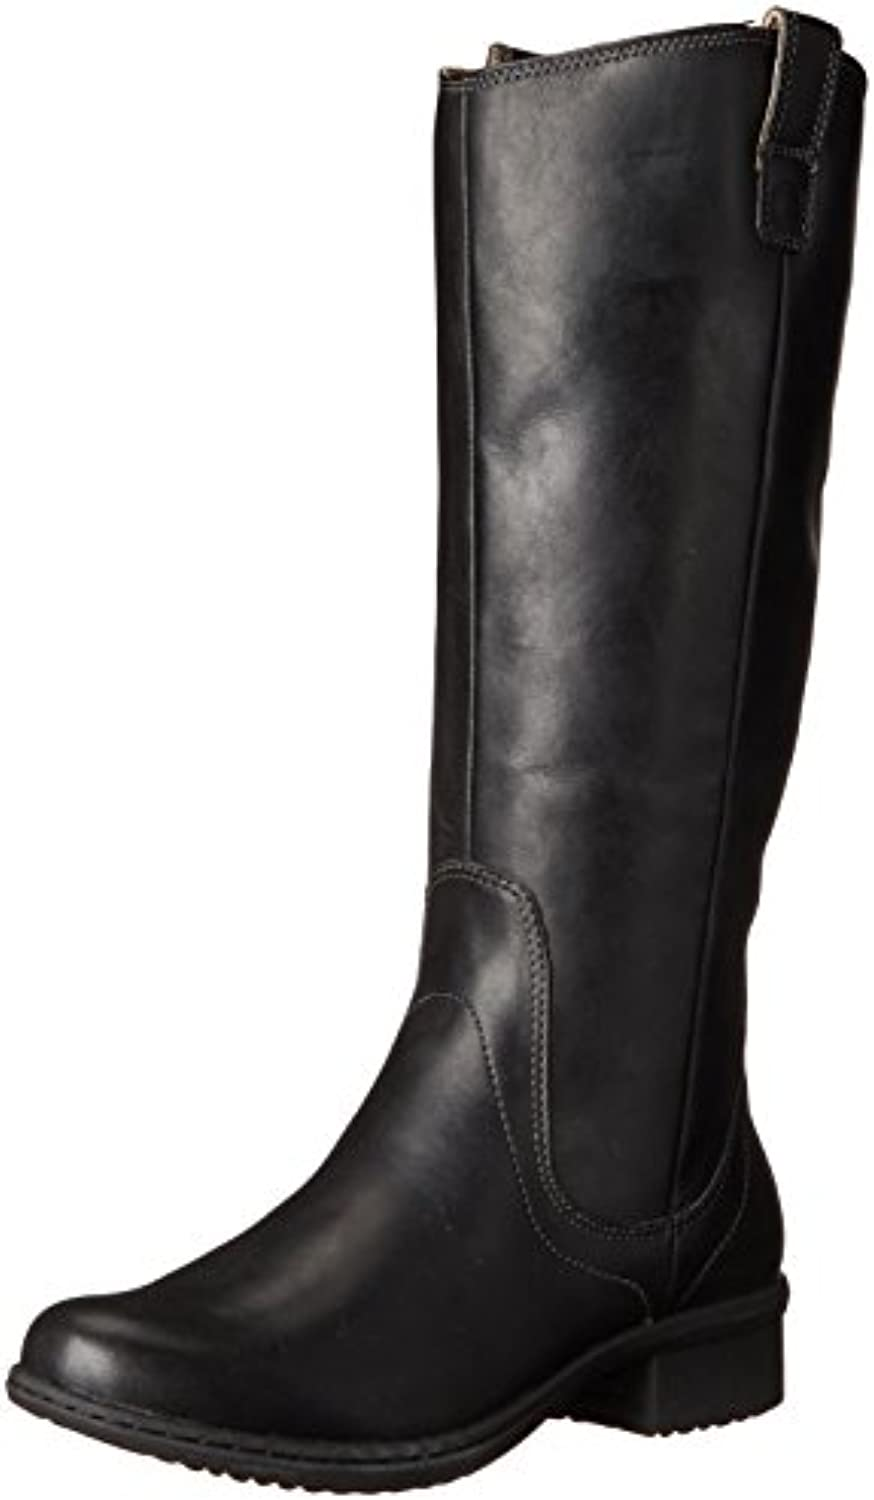 Bogs Ladies Kristina Tall Black Leather Waterproof Slip Resistant Boots 71701-UK 4 (EU 37)